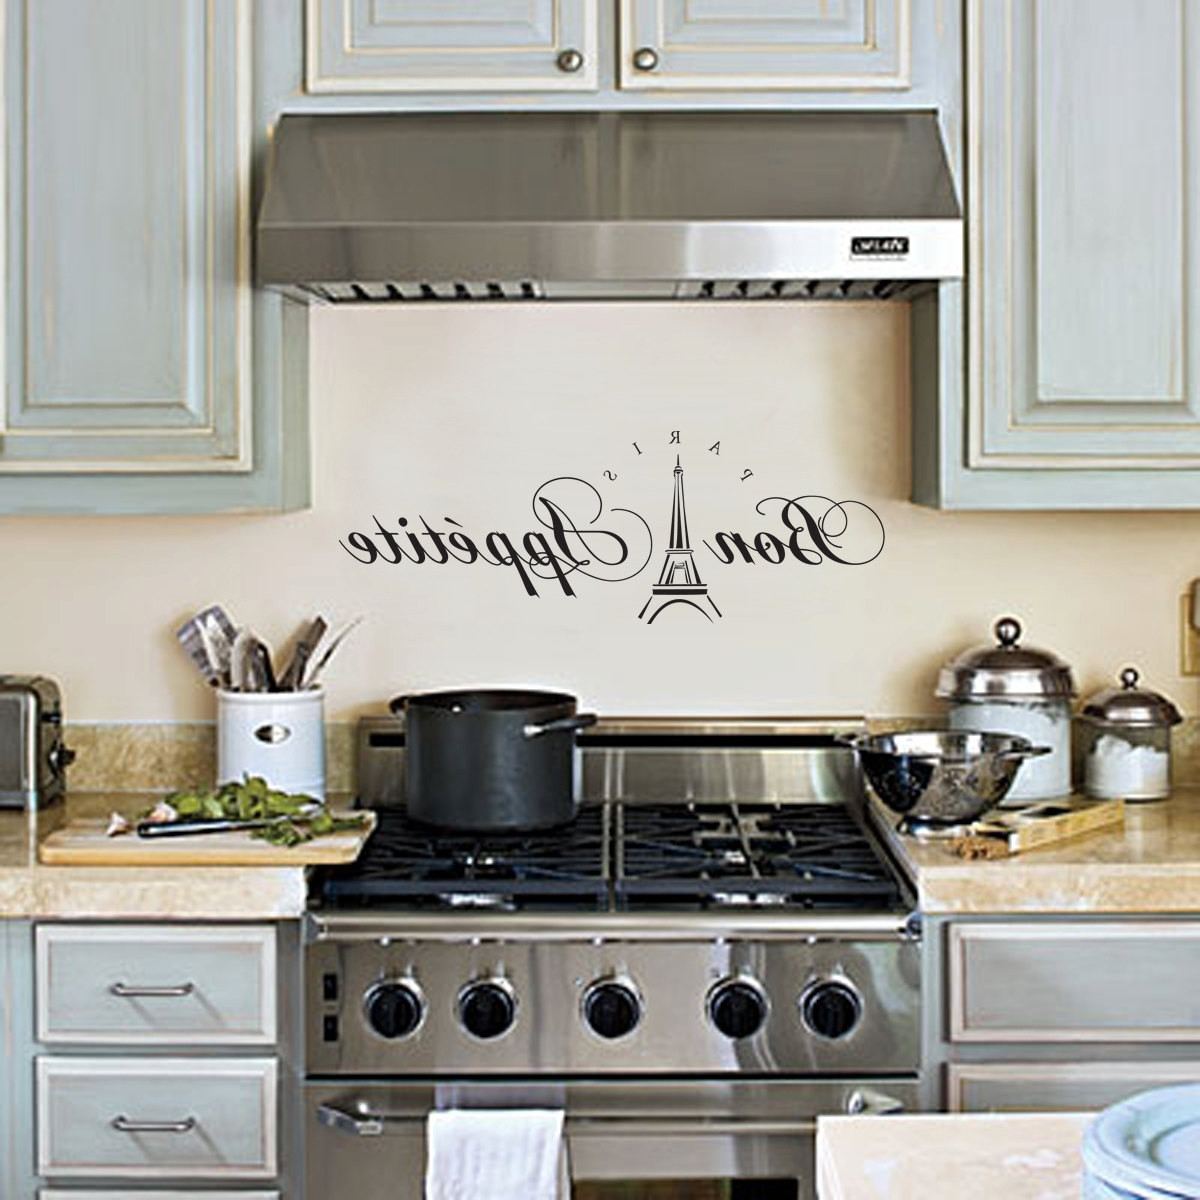 Bon Appetit Wall Decal, Paris Kitchen Wall Decor Wall Art Wall With Regard To Best And Newest Paris Themed Wall Art (View 12 of 15)